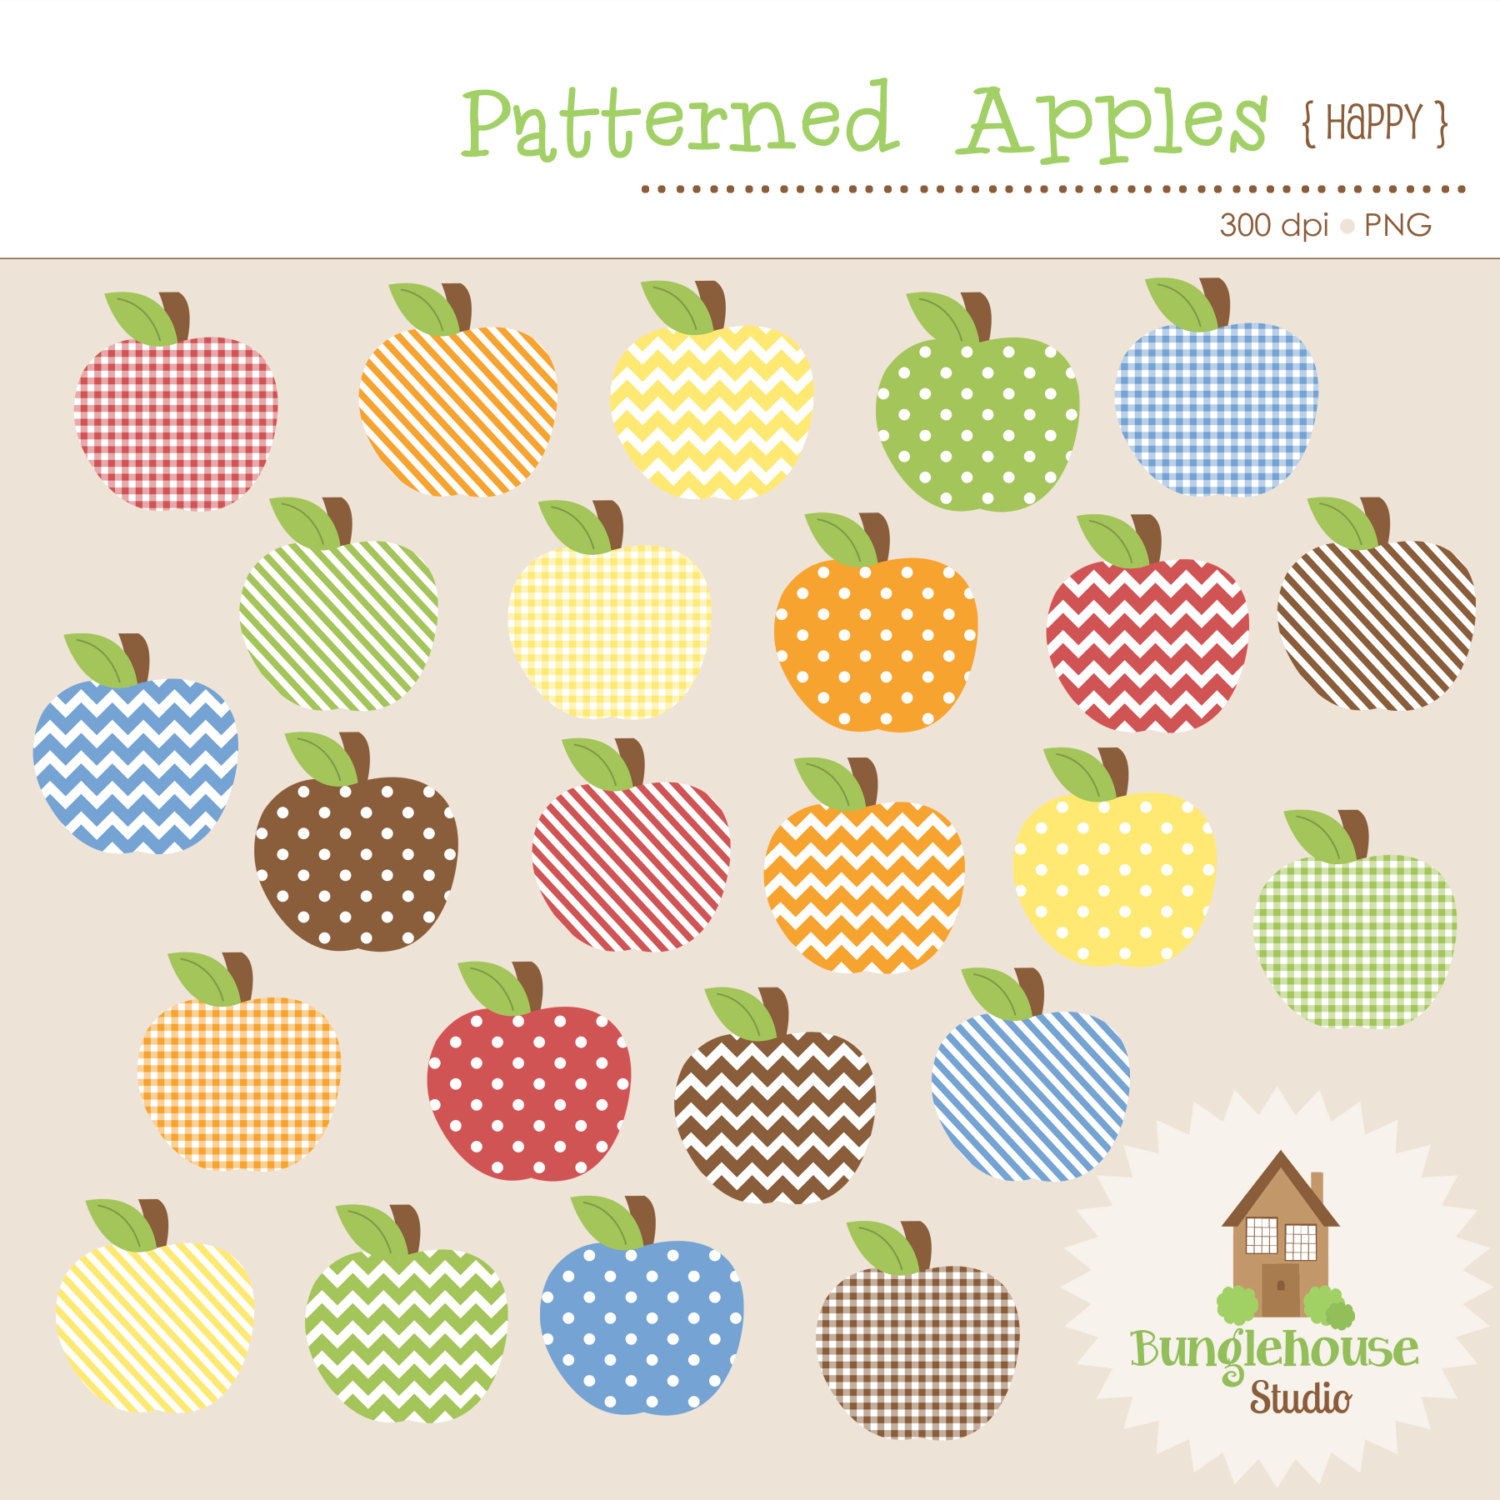 Colouful clipart apple #10